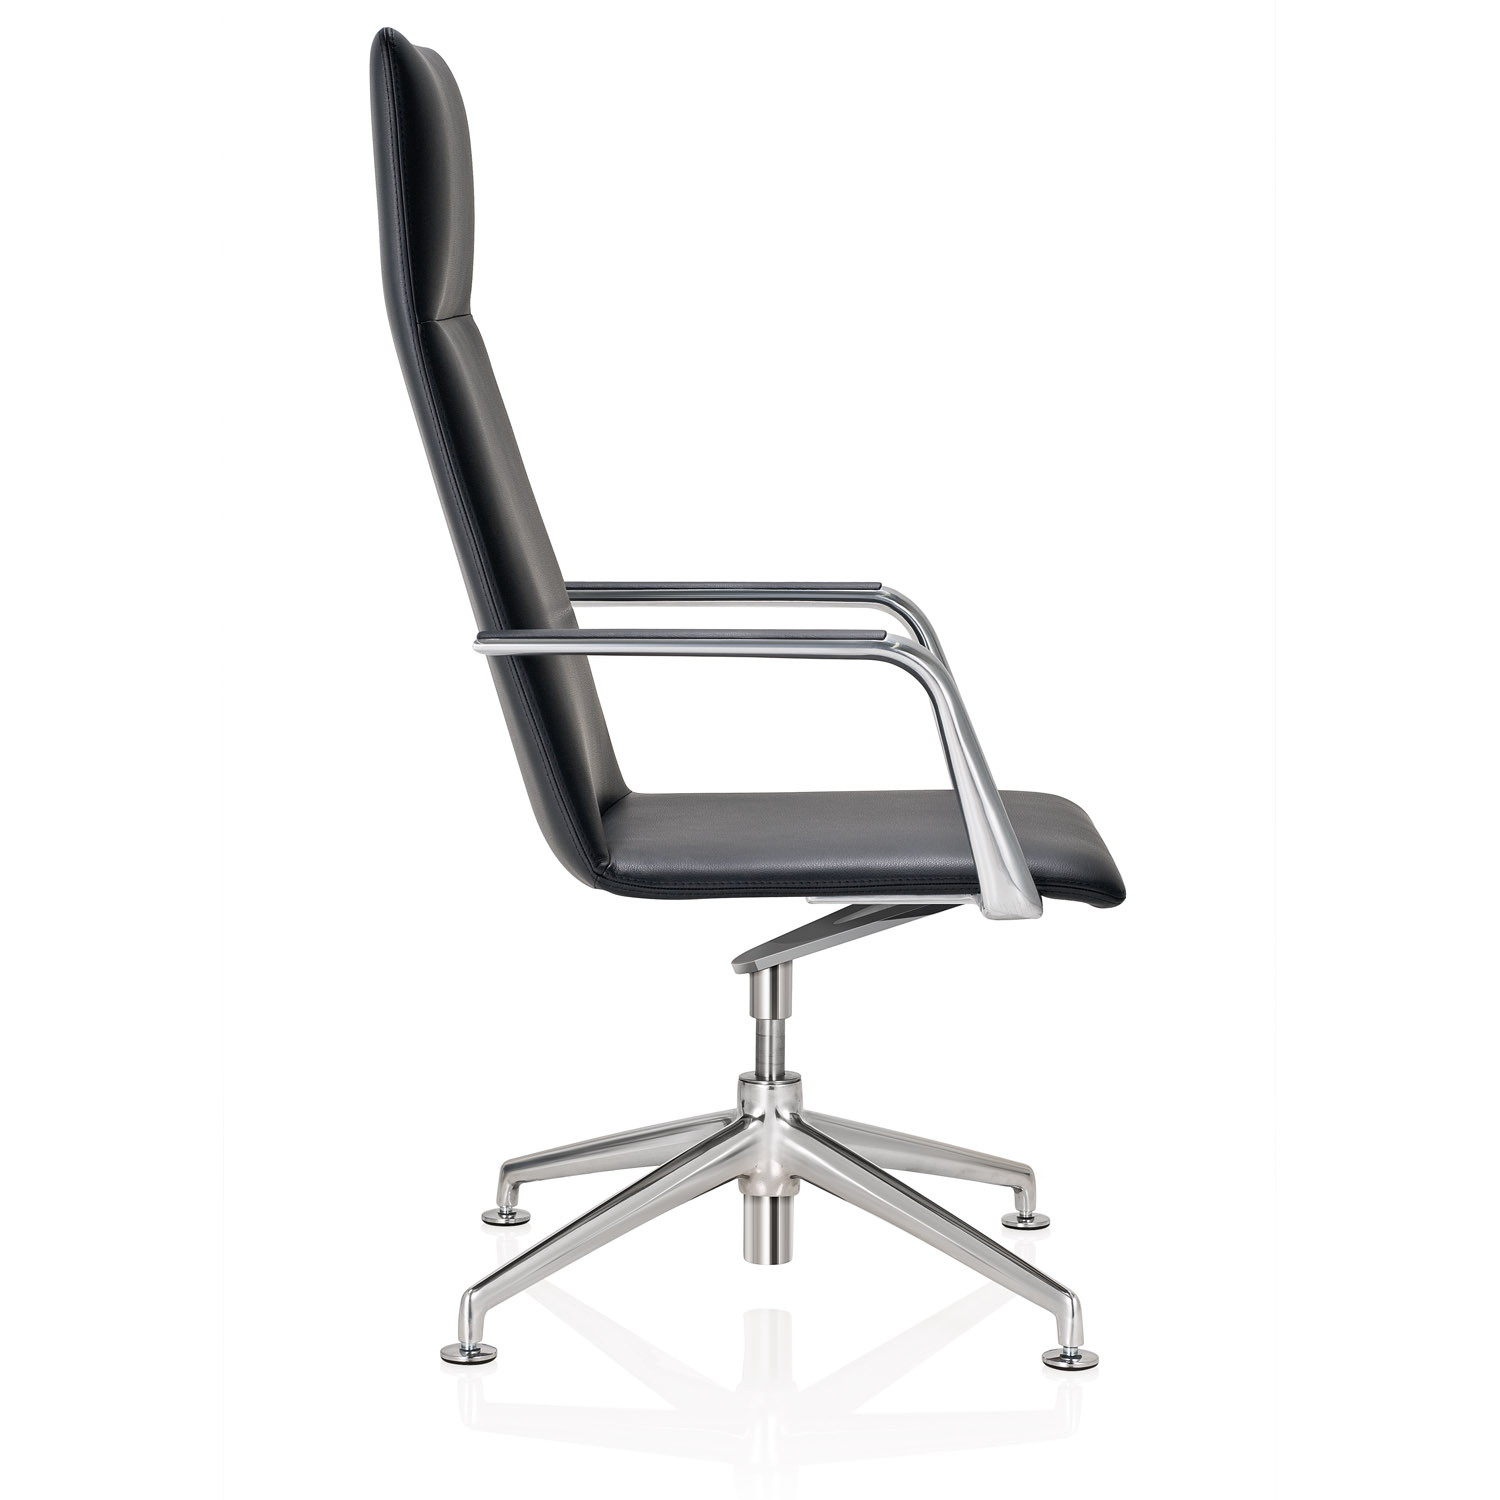 FinaSoft Conference Swivel Chair with Glides